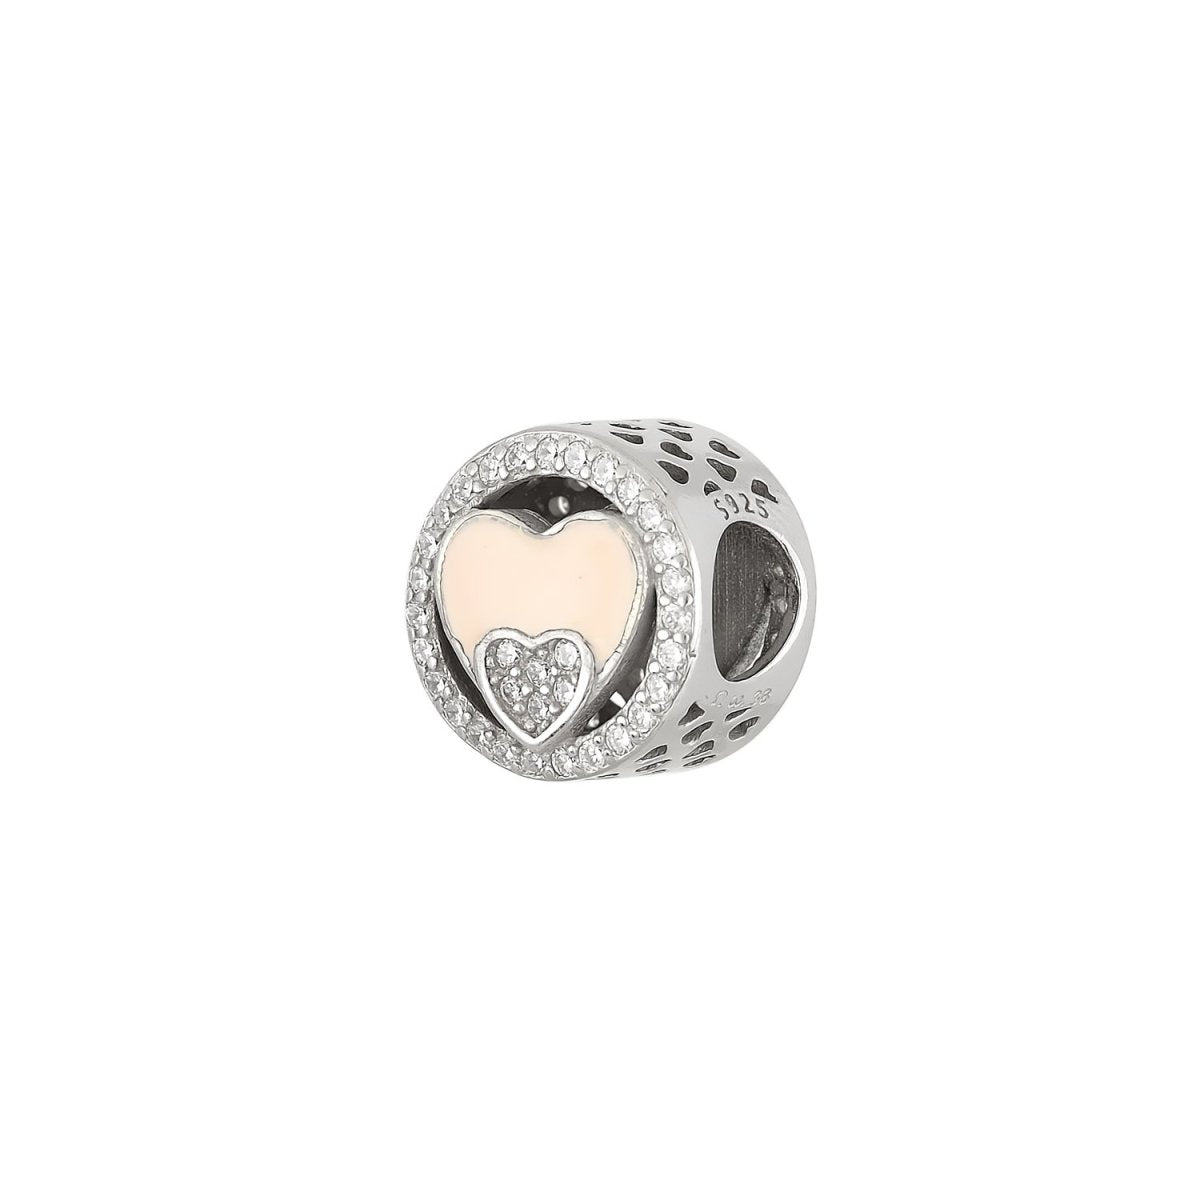 Pattern for Bracelet D010W Heart From Platinum Silver - Goldy Jewelry Store